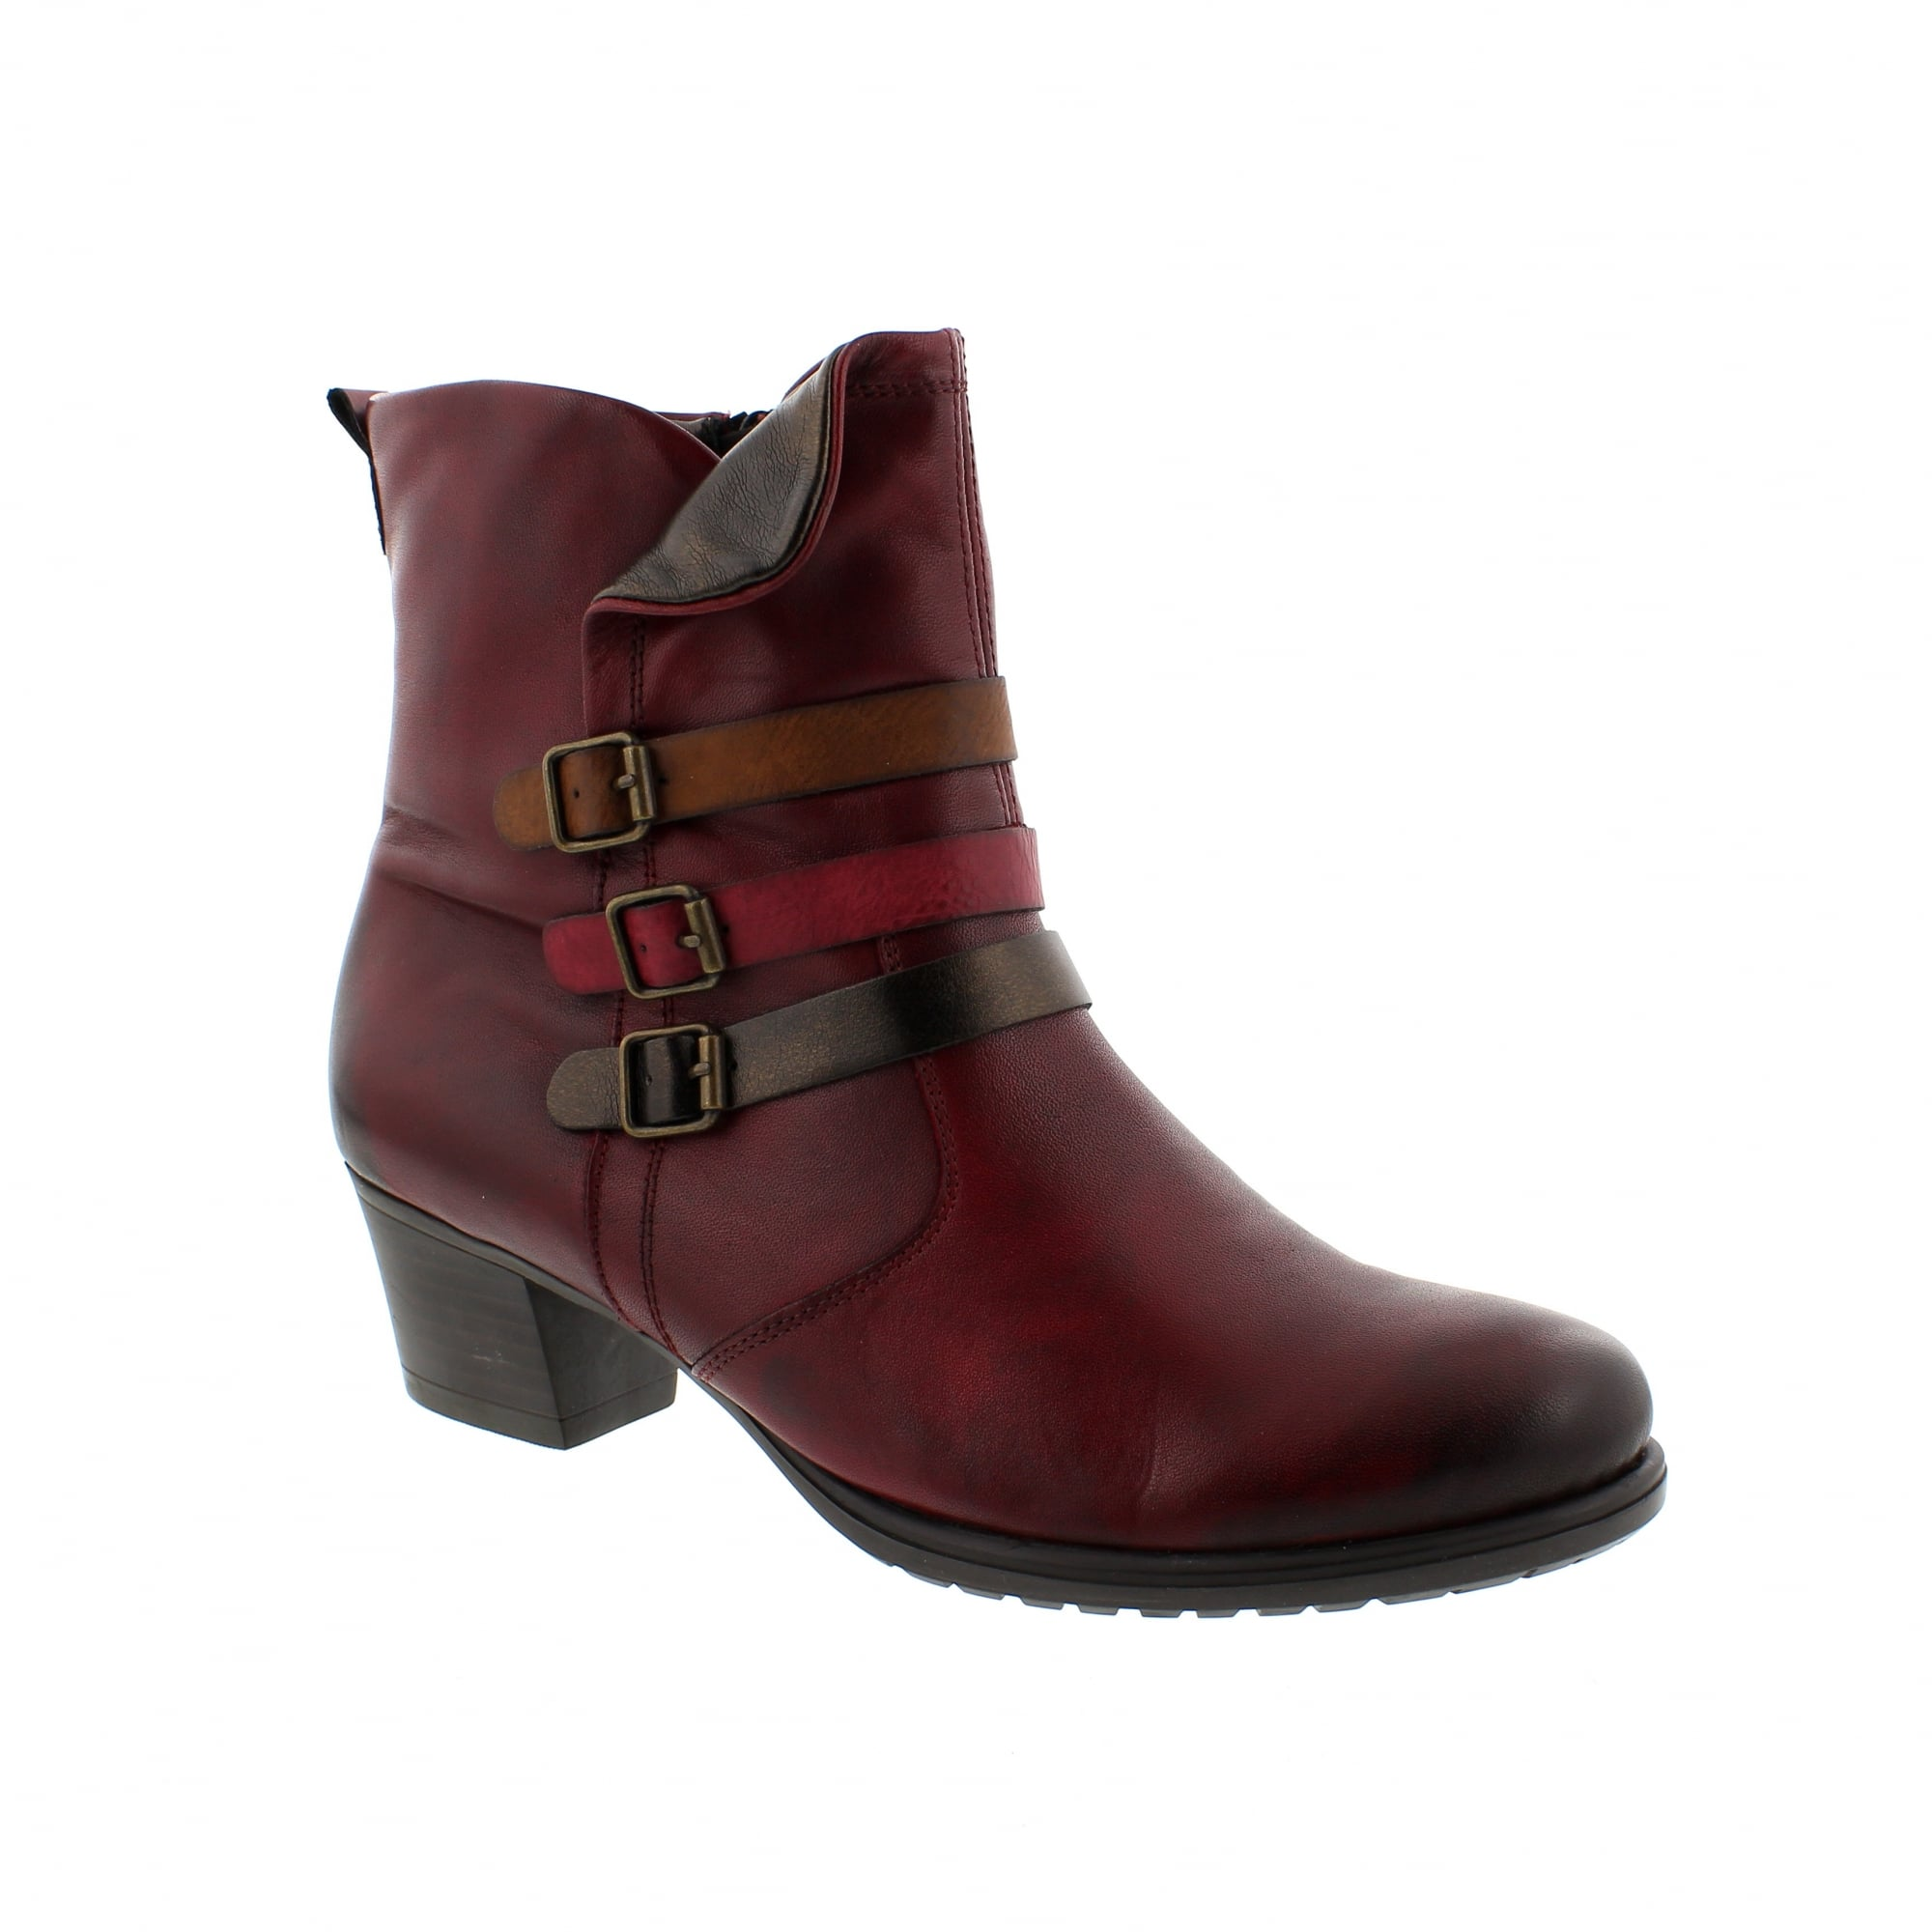 91708faadecd Remonte D3179-35 - Womens from Rogerson Shoes UK